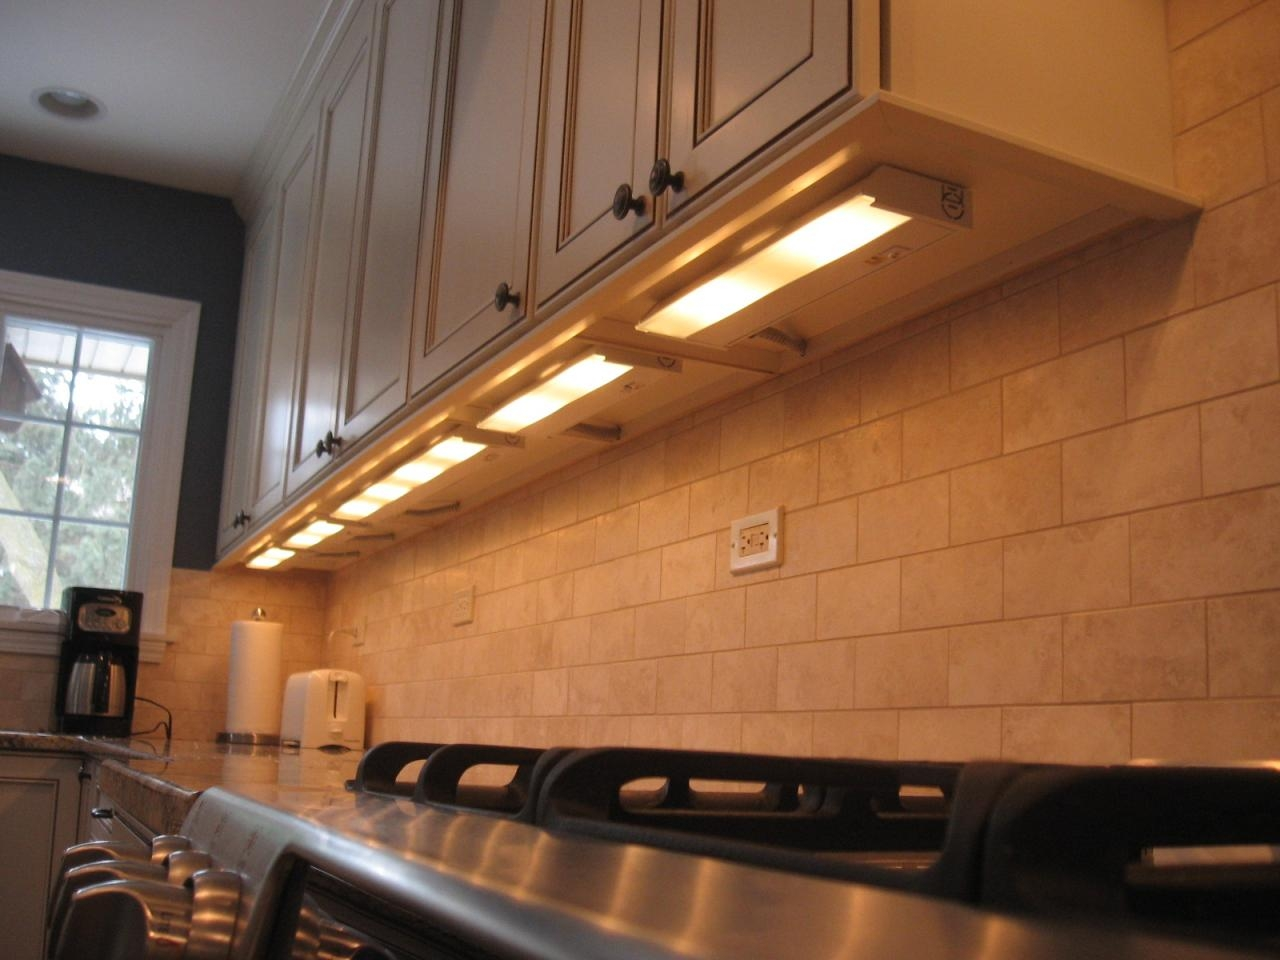 Adding Under Cabinet Lighting To Existing Kitchen